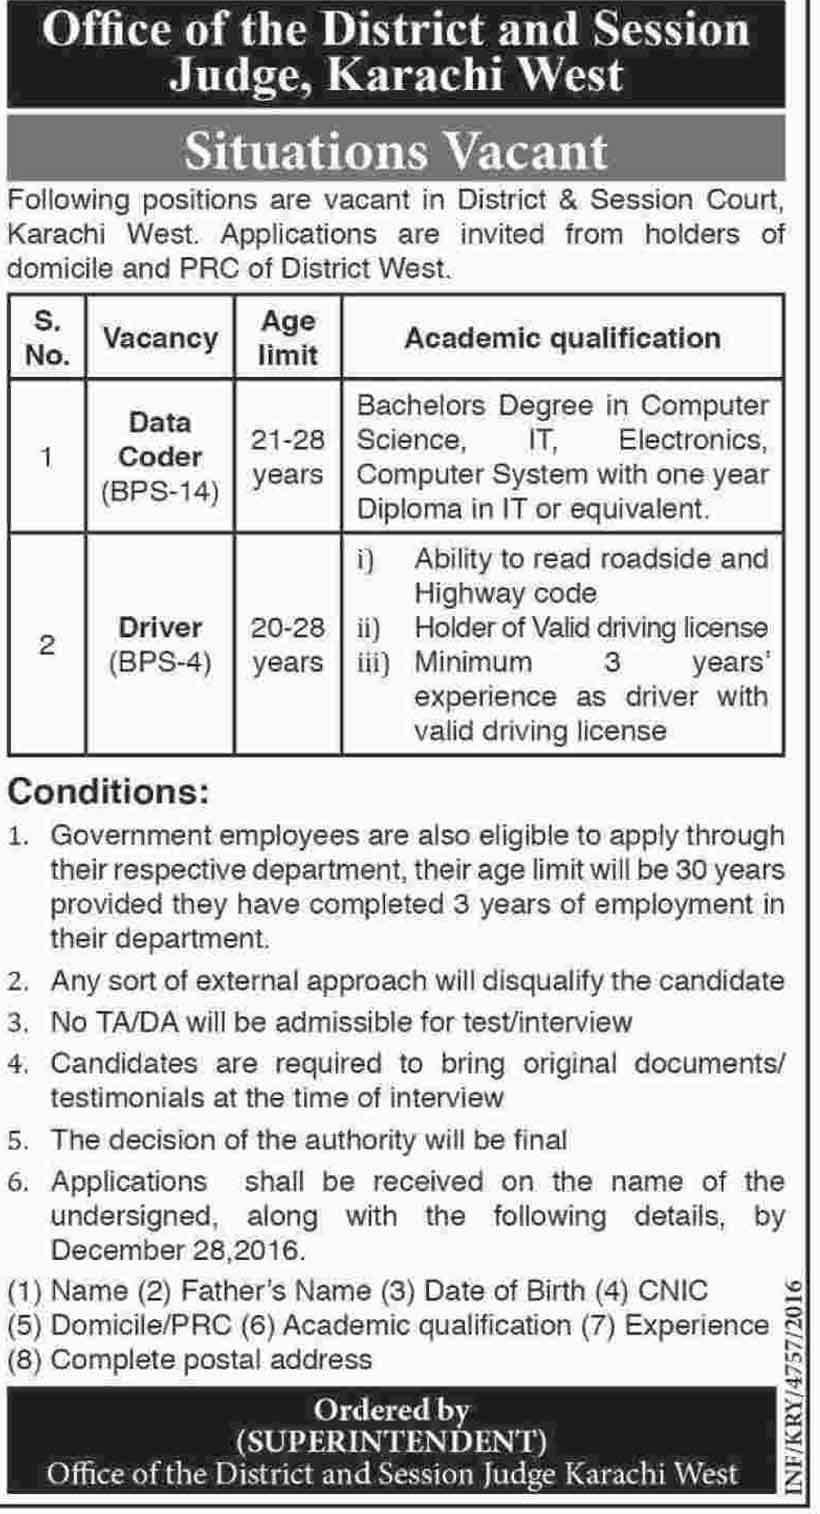 Jobs in District Office and Session Judge Karachi